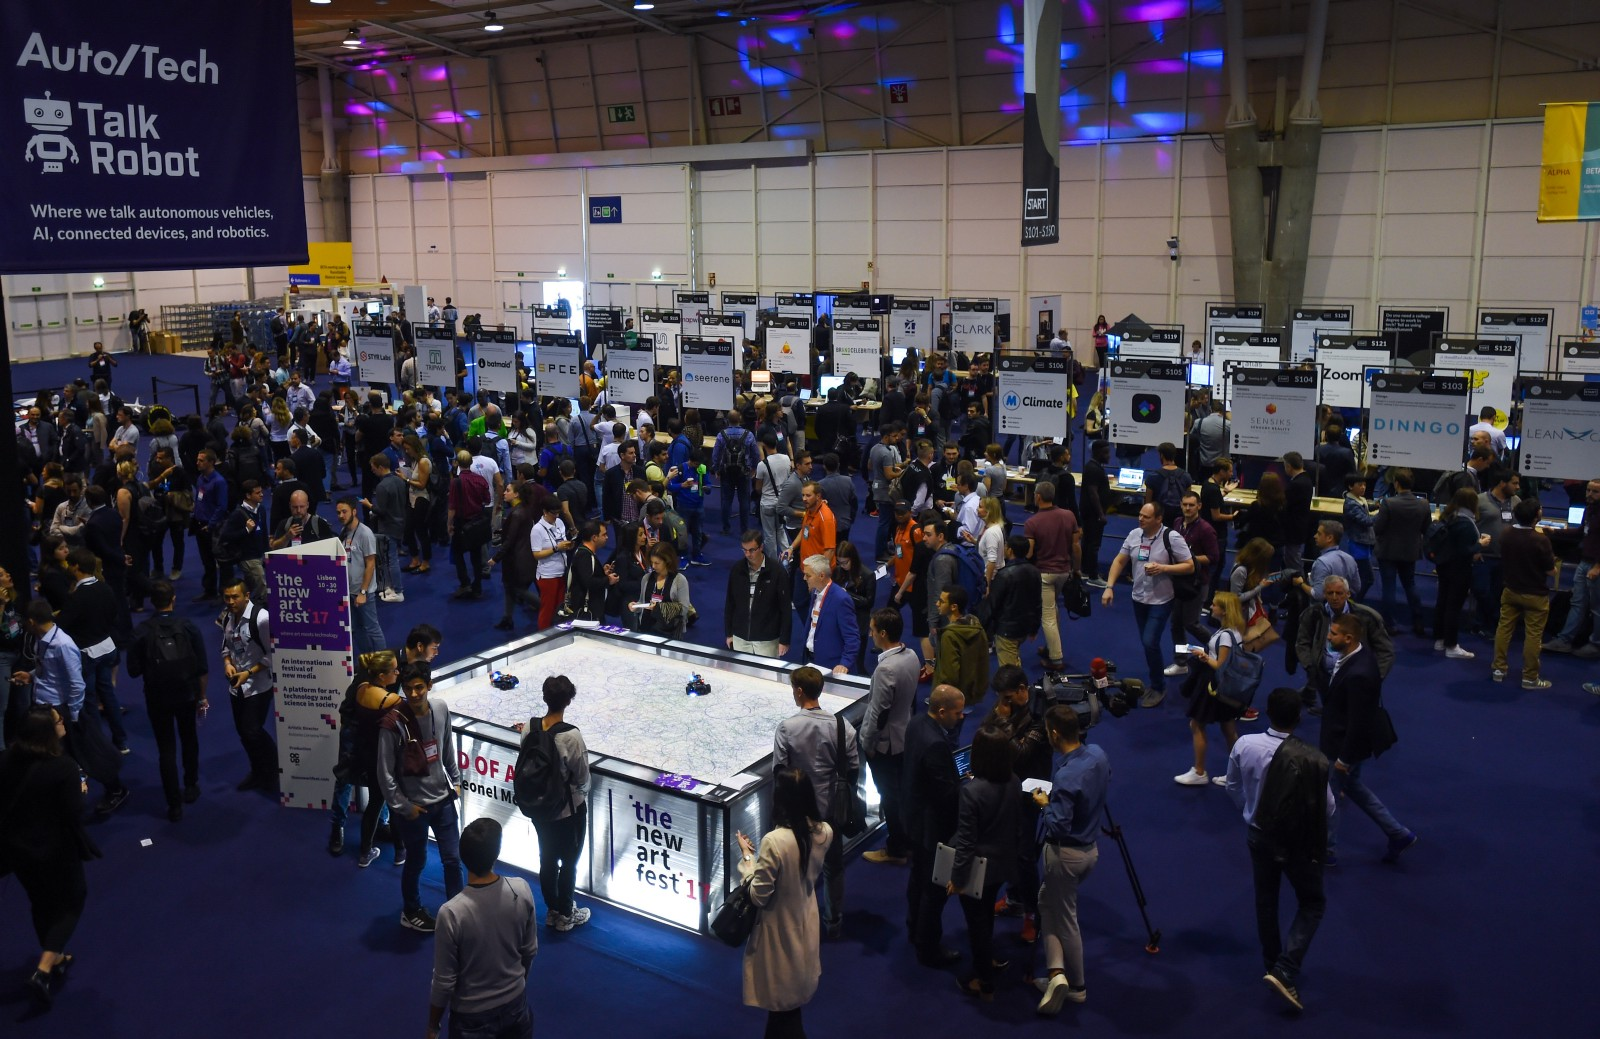 The most in-demand AI & machine learning startups at Web Summit 2018